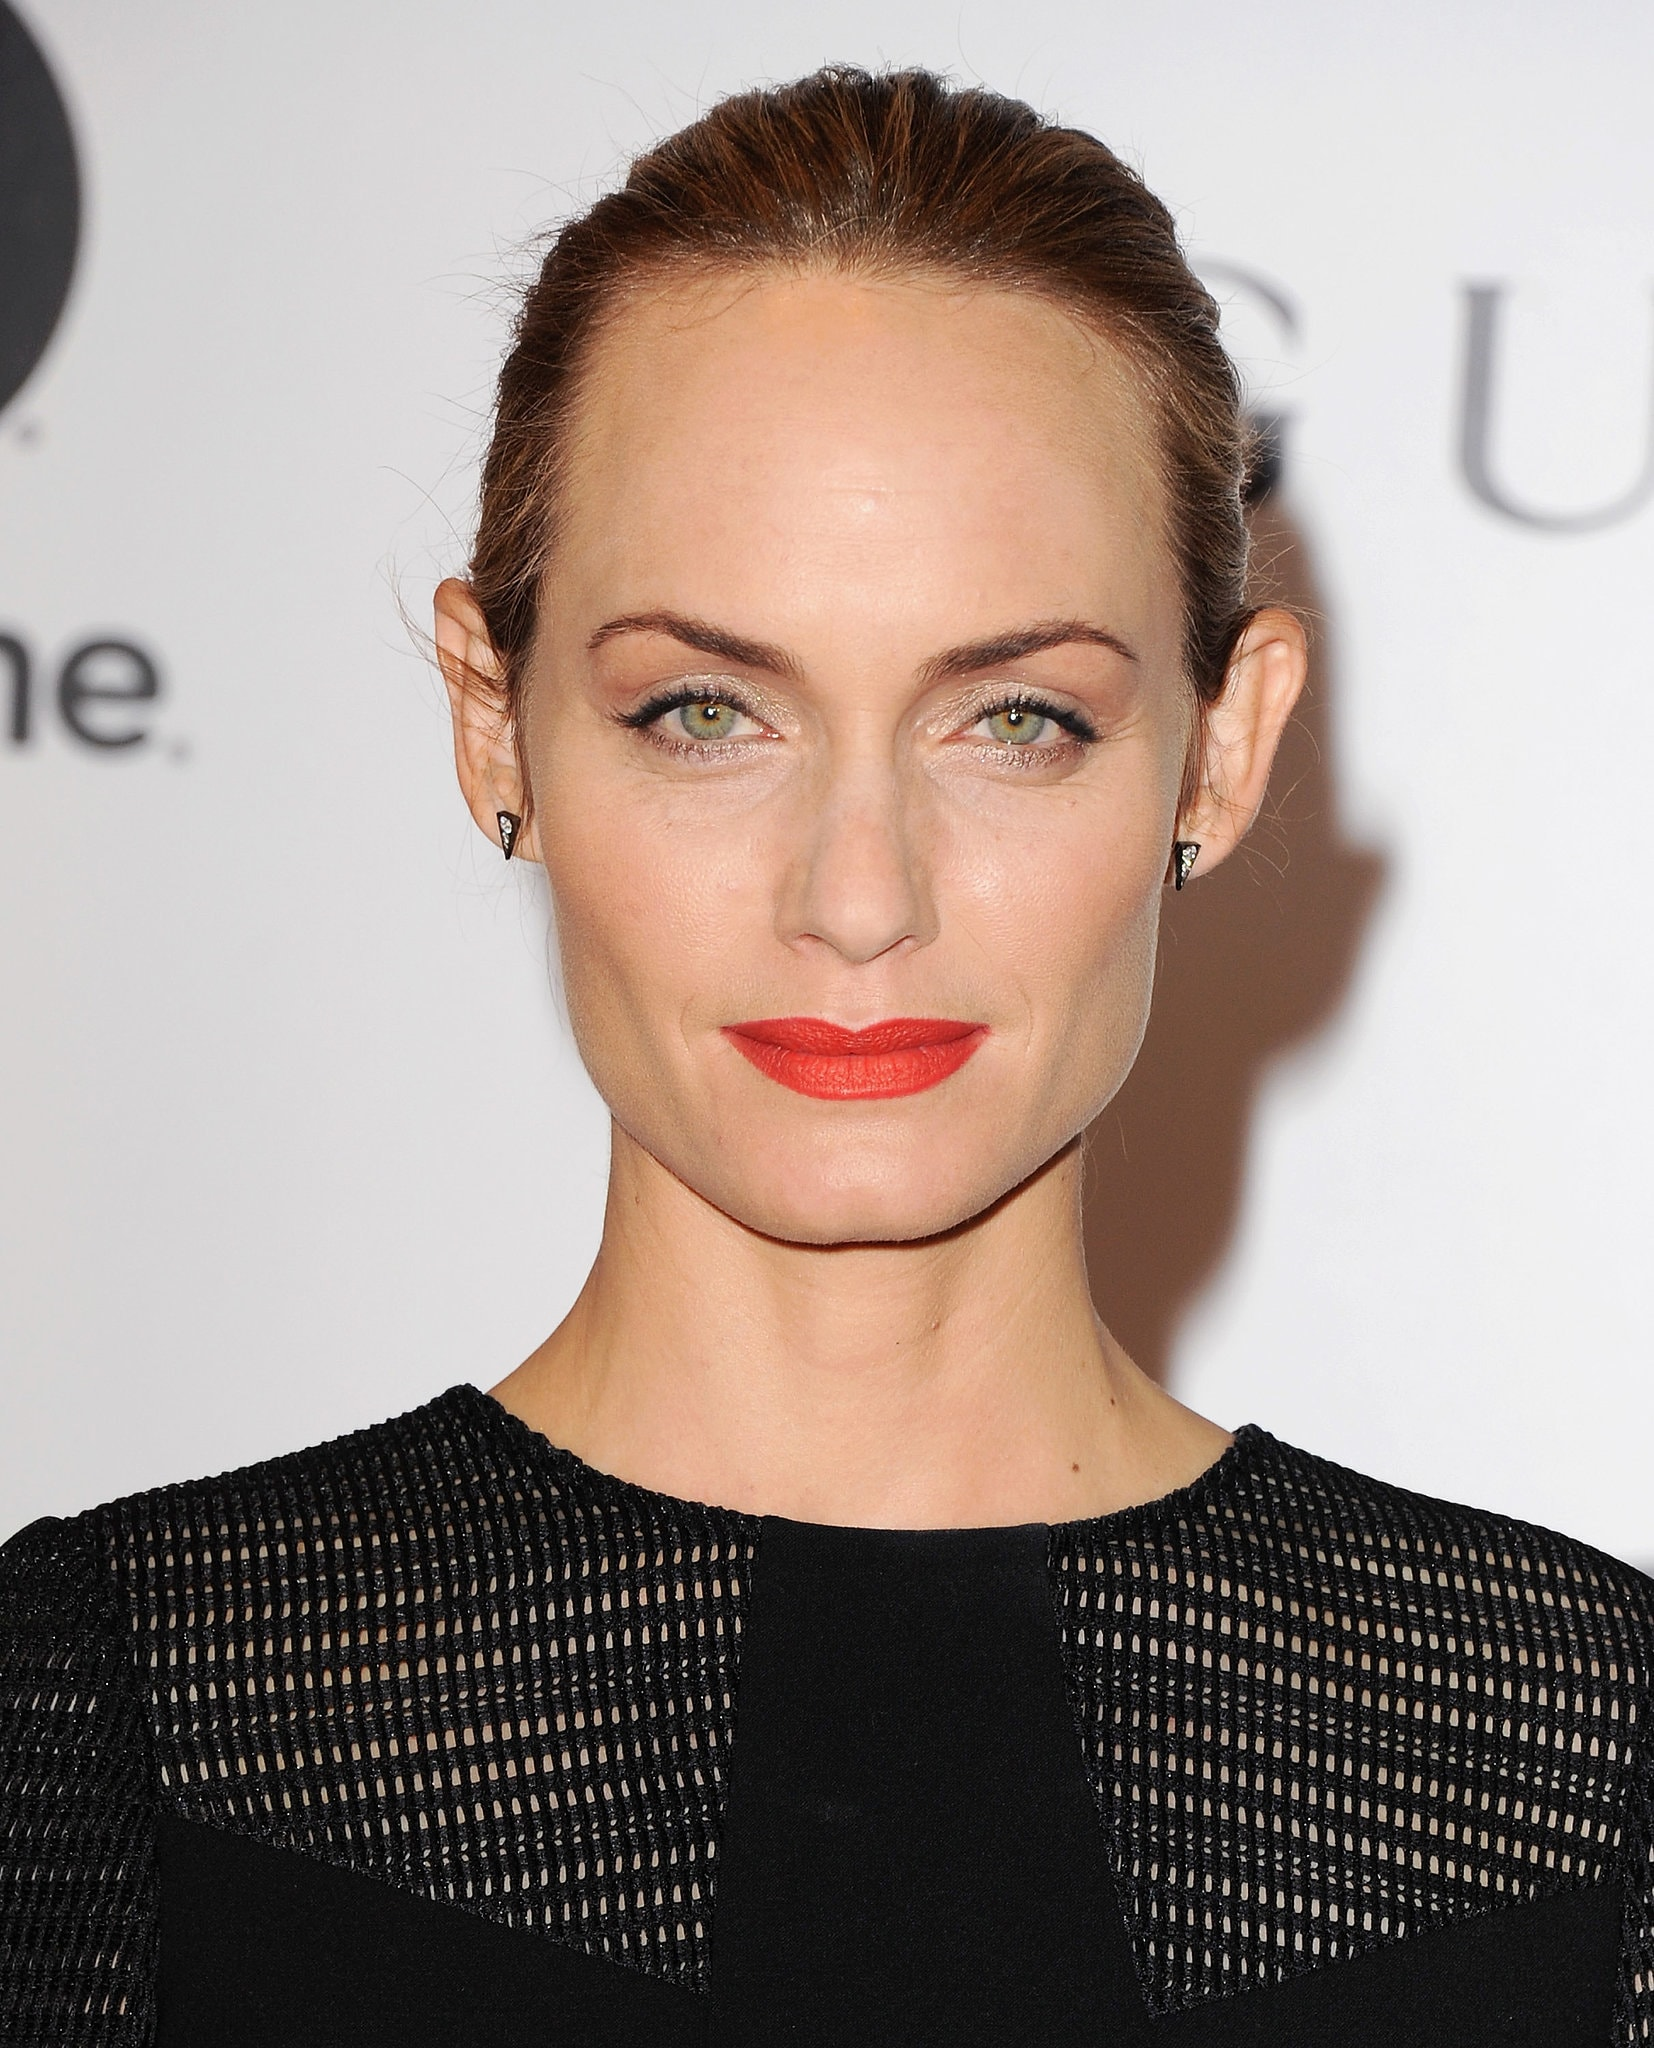 Amber Valletta Full hd wallpapers